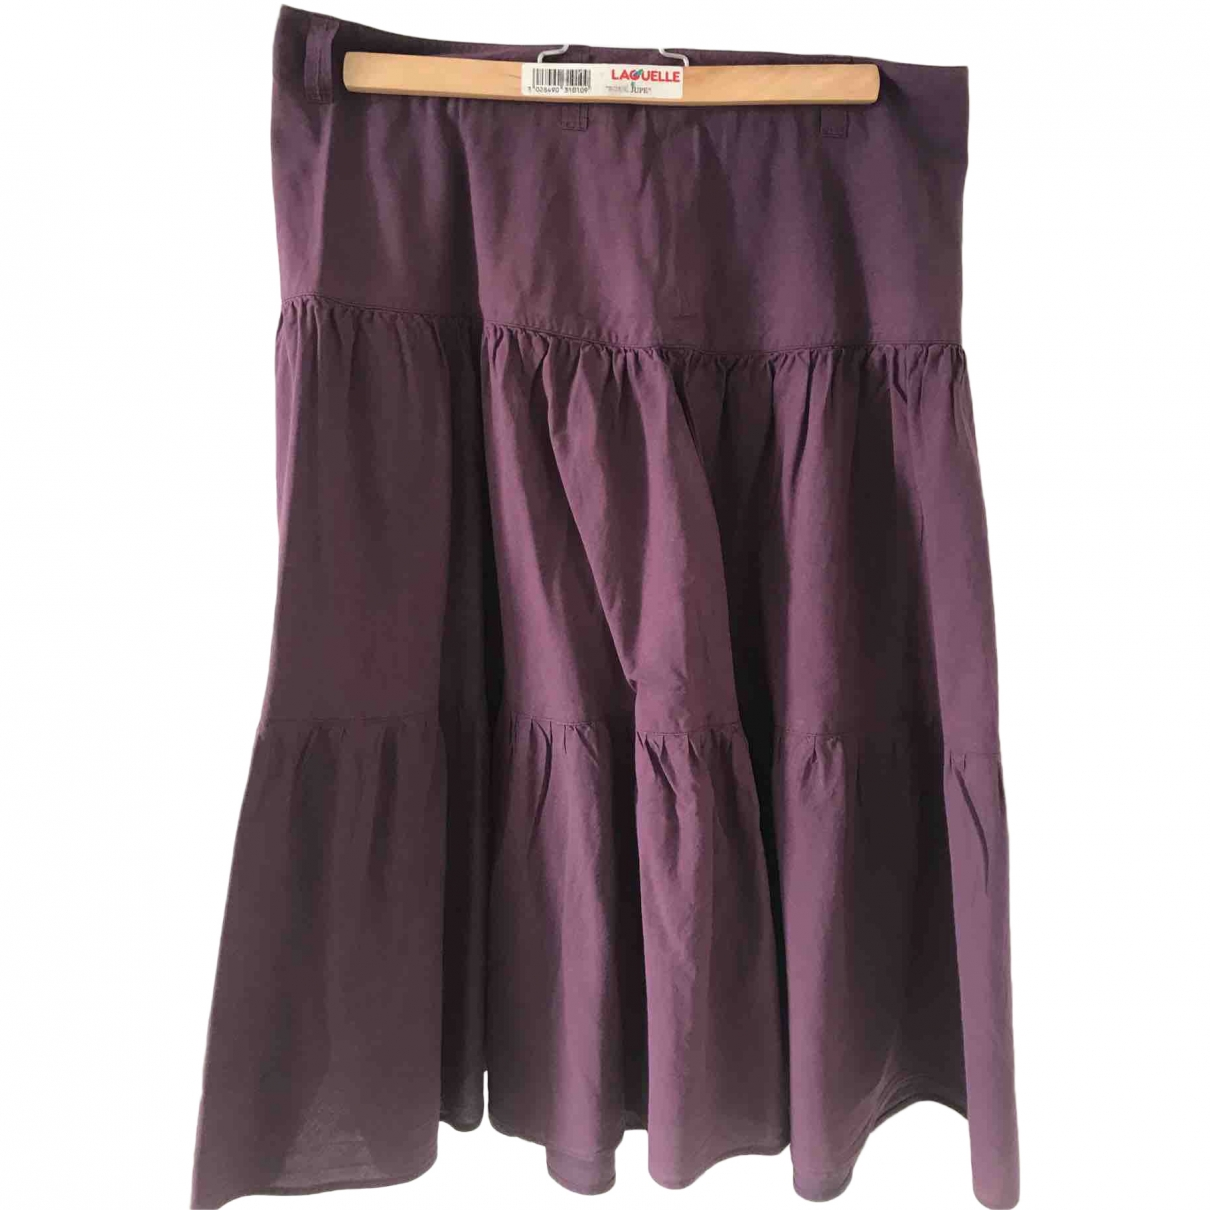 Agnès B. \N Purple Cotton skirt for Women 38 FR